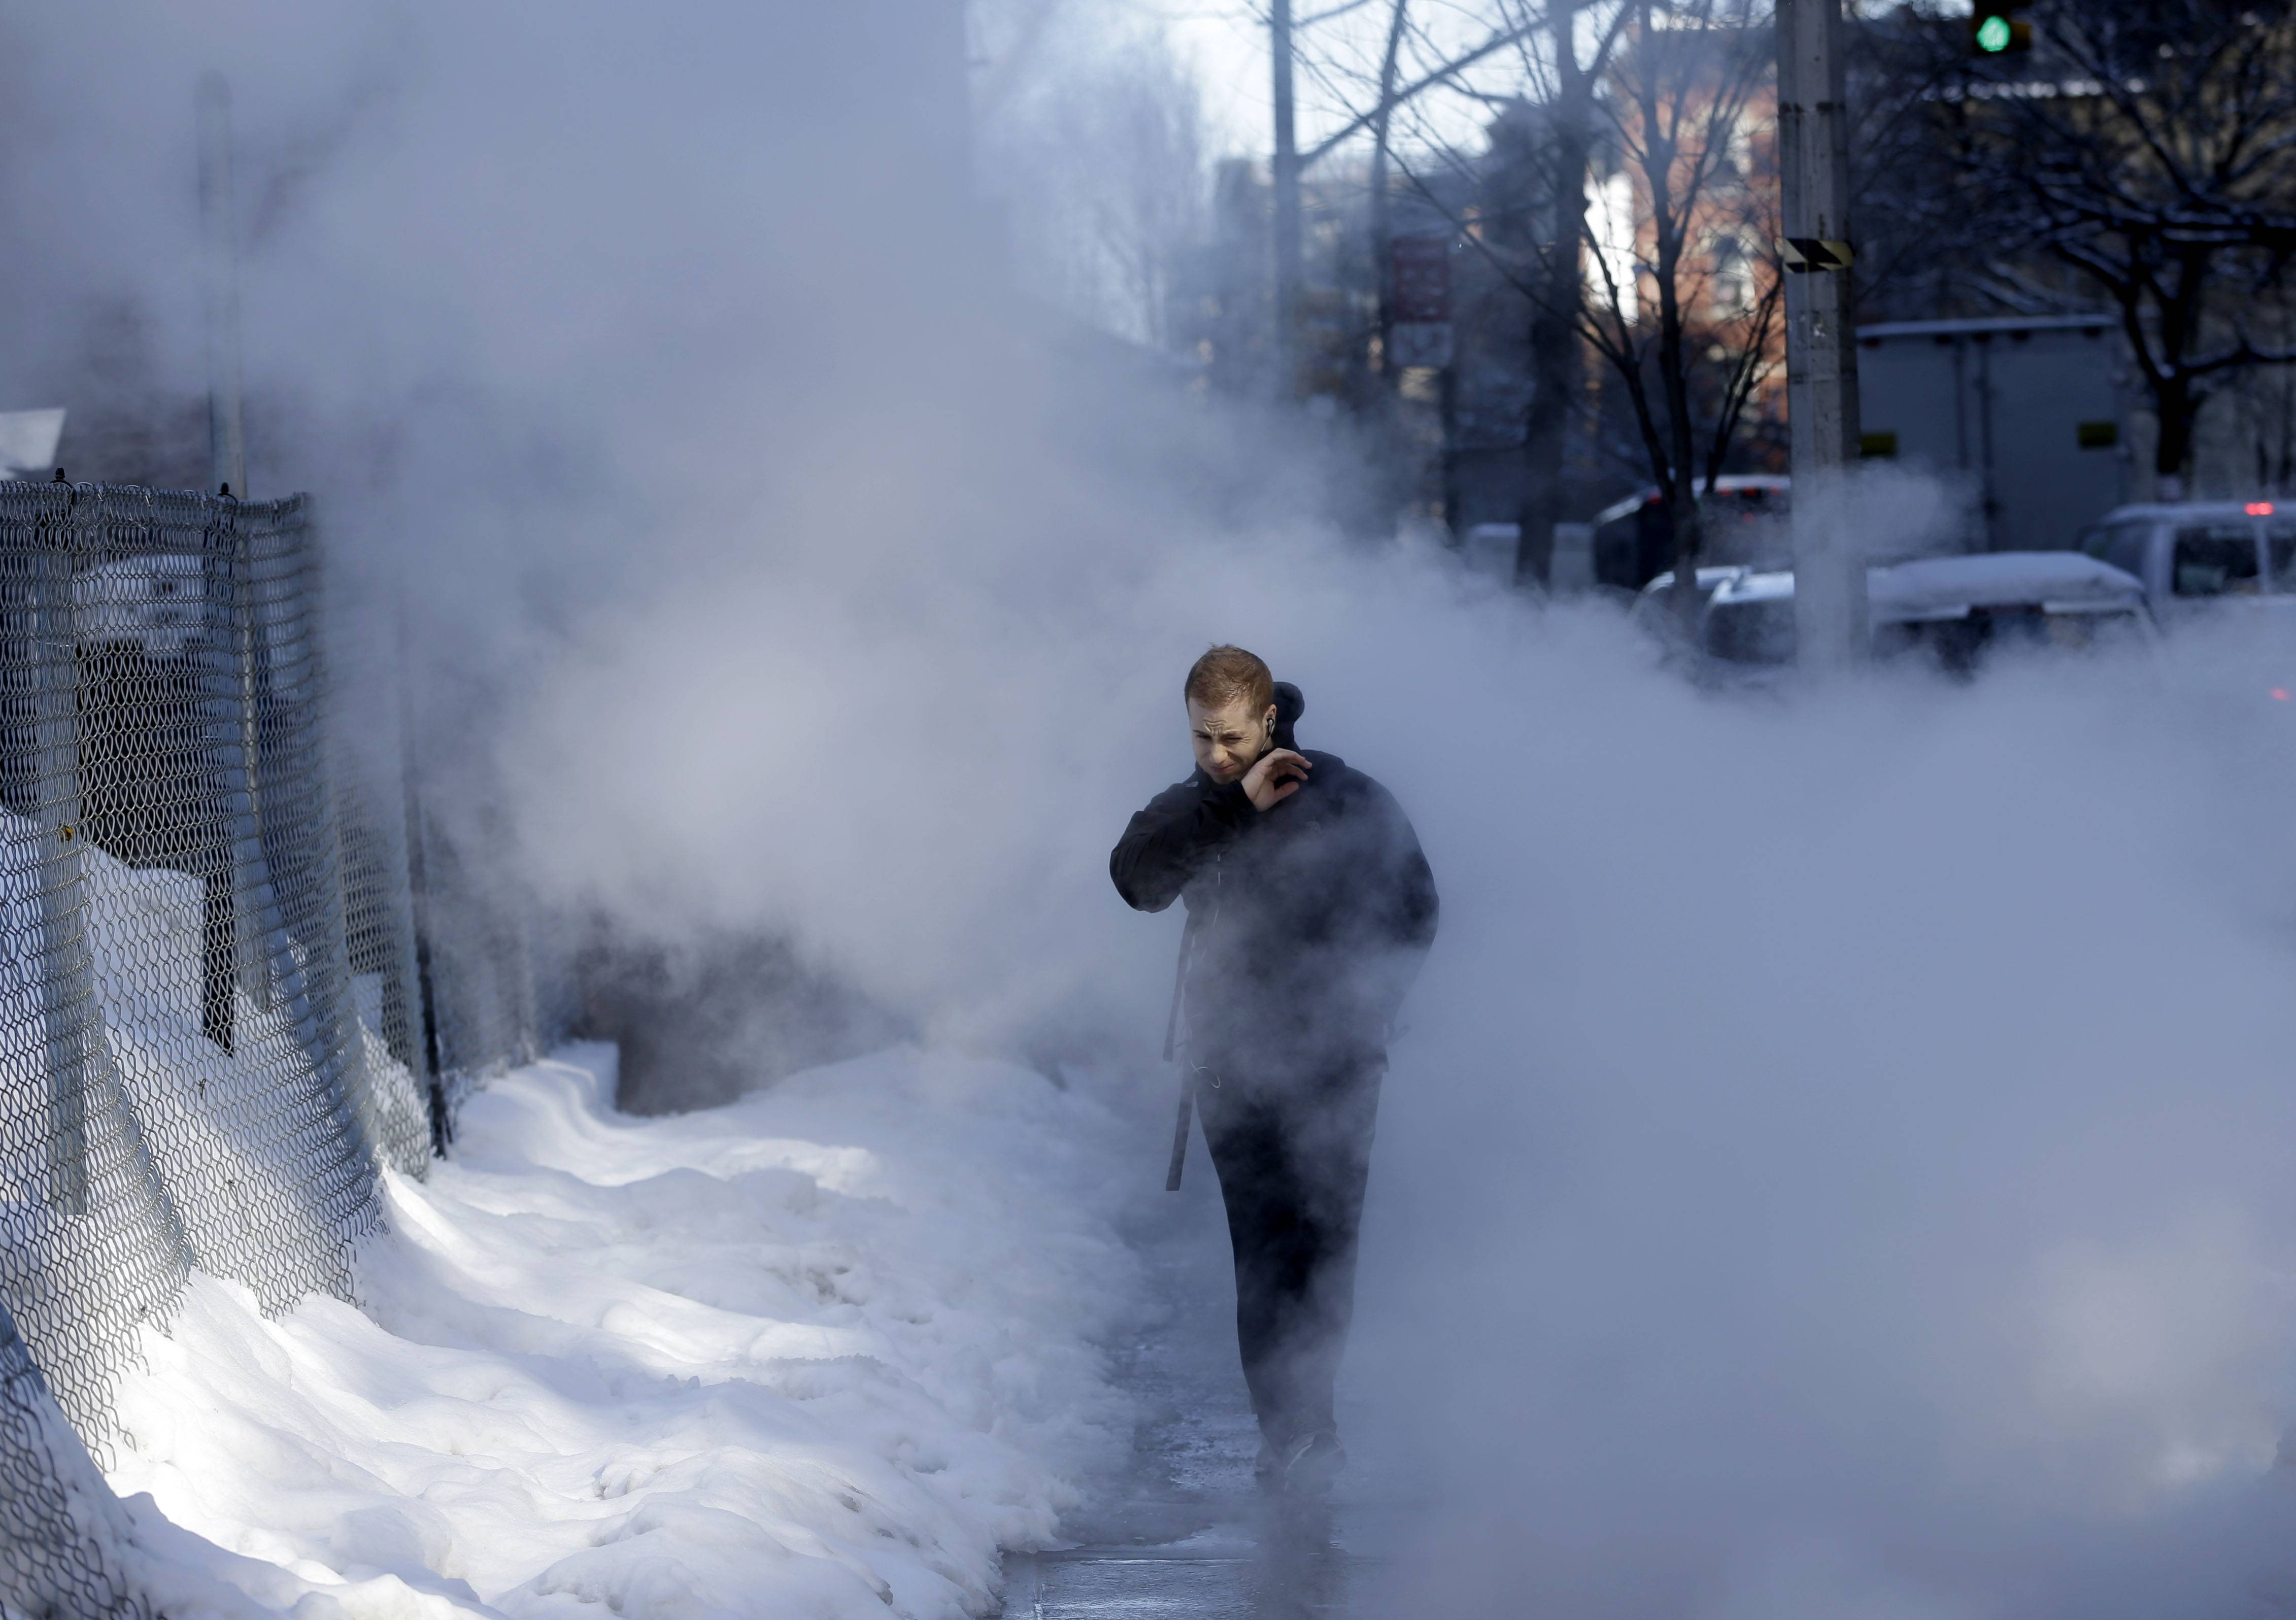 A pedestrian walks through a cloud of steam on a snowy street in New York, Friday, Feb. 14, 2014. Commuters faced slick roads on Friday after yet another winter storm brought snow and ice to the East Coast, leaving at least 24 people dead.